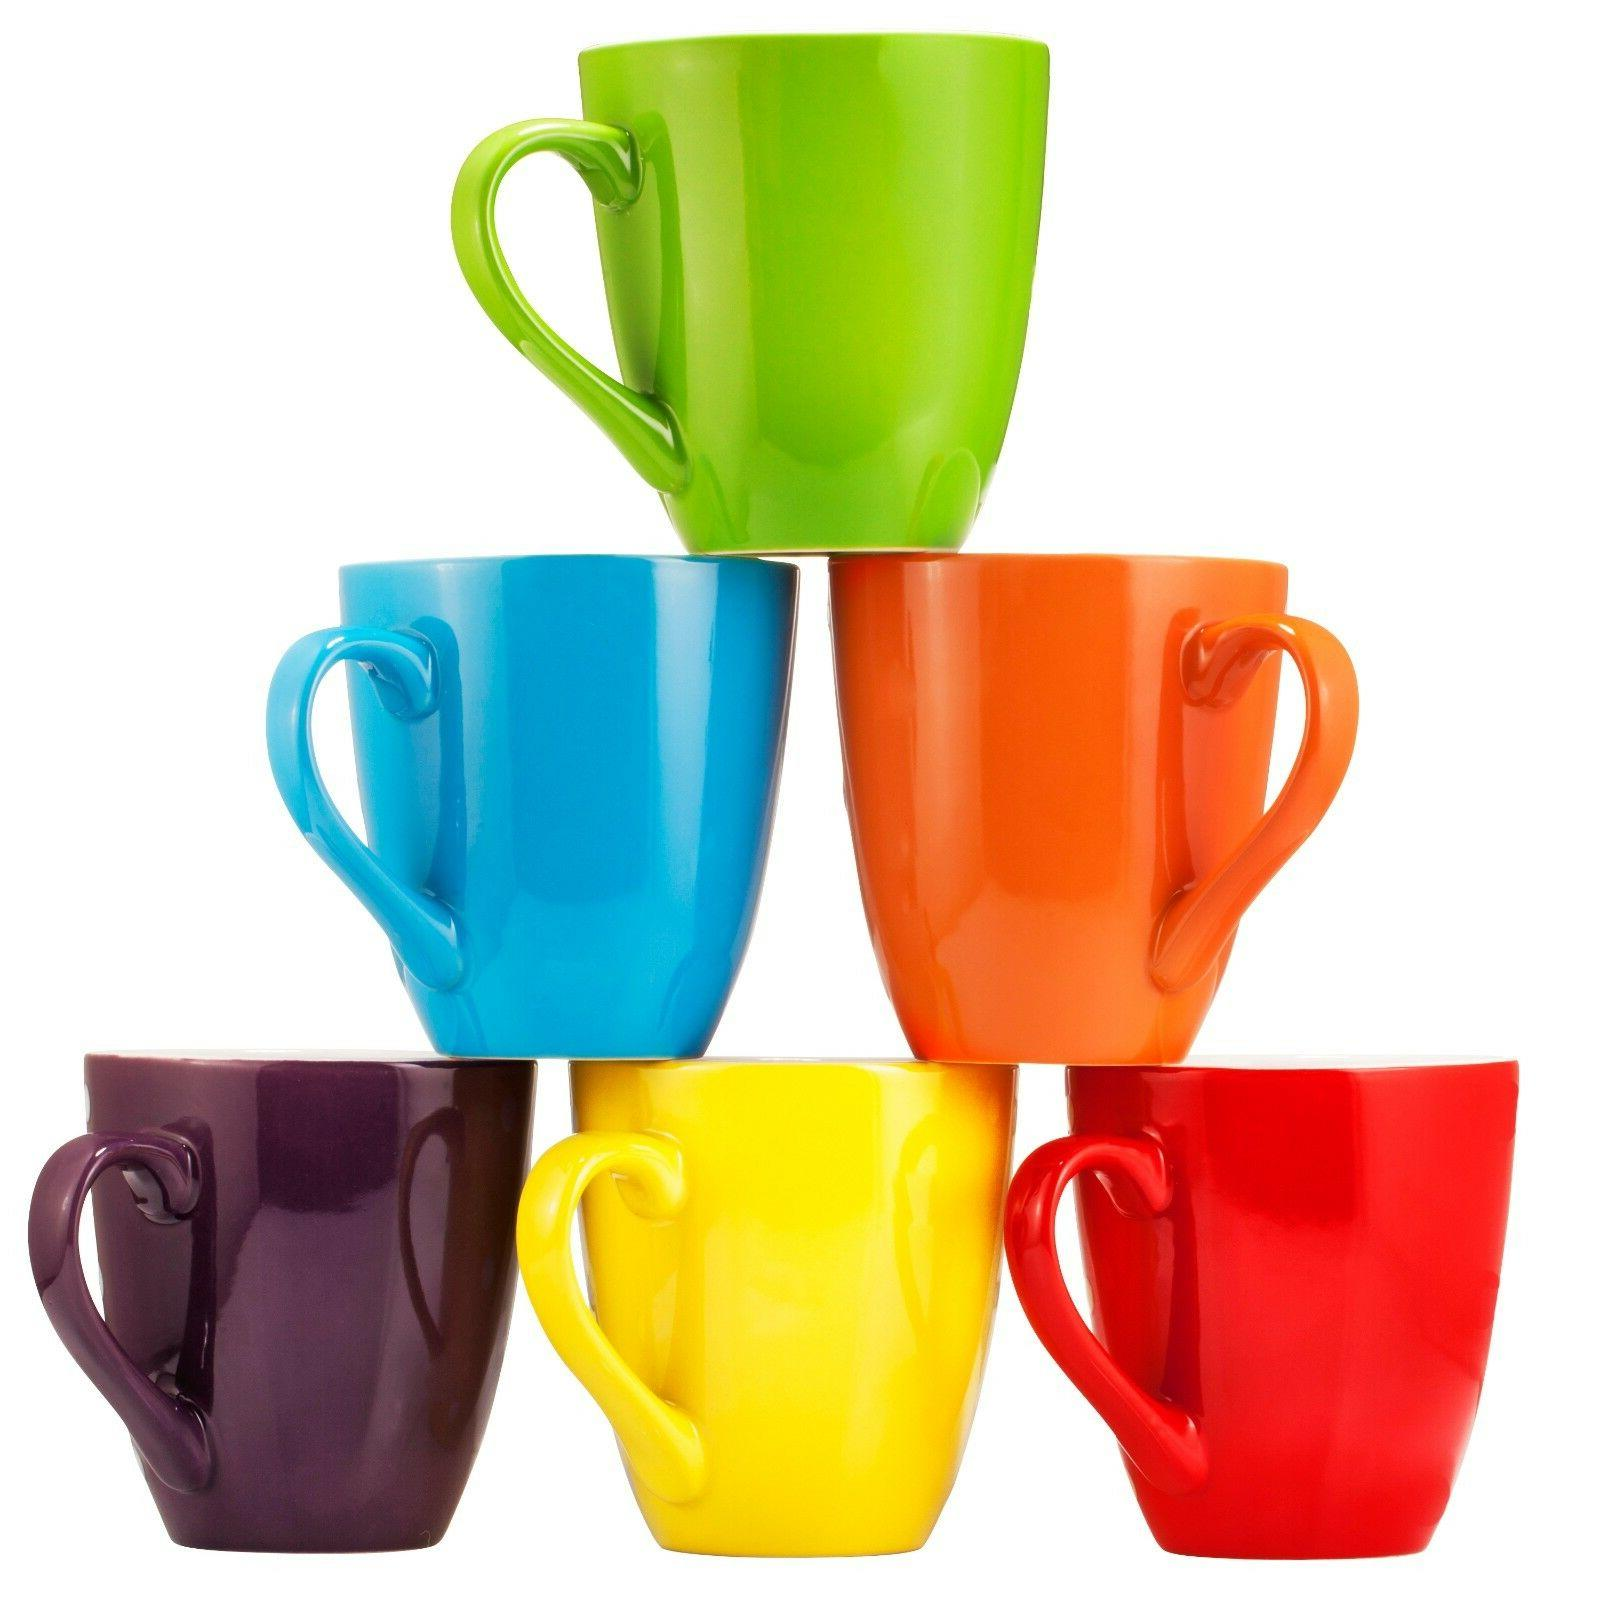 Bruntmor Ceramic Coffee Cups Mugs Set of 6 Large-sized Mugs